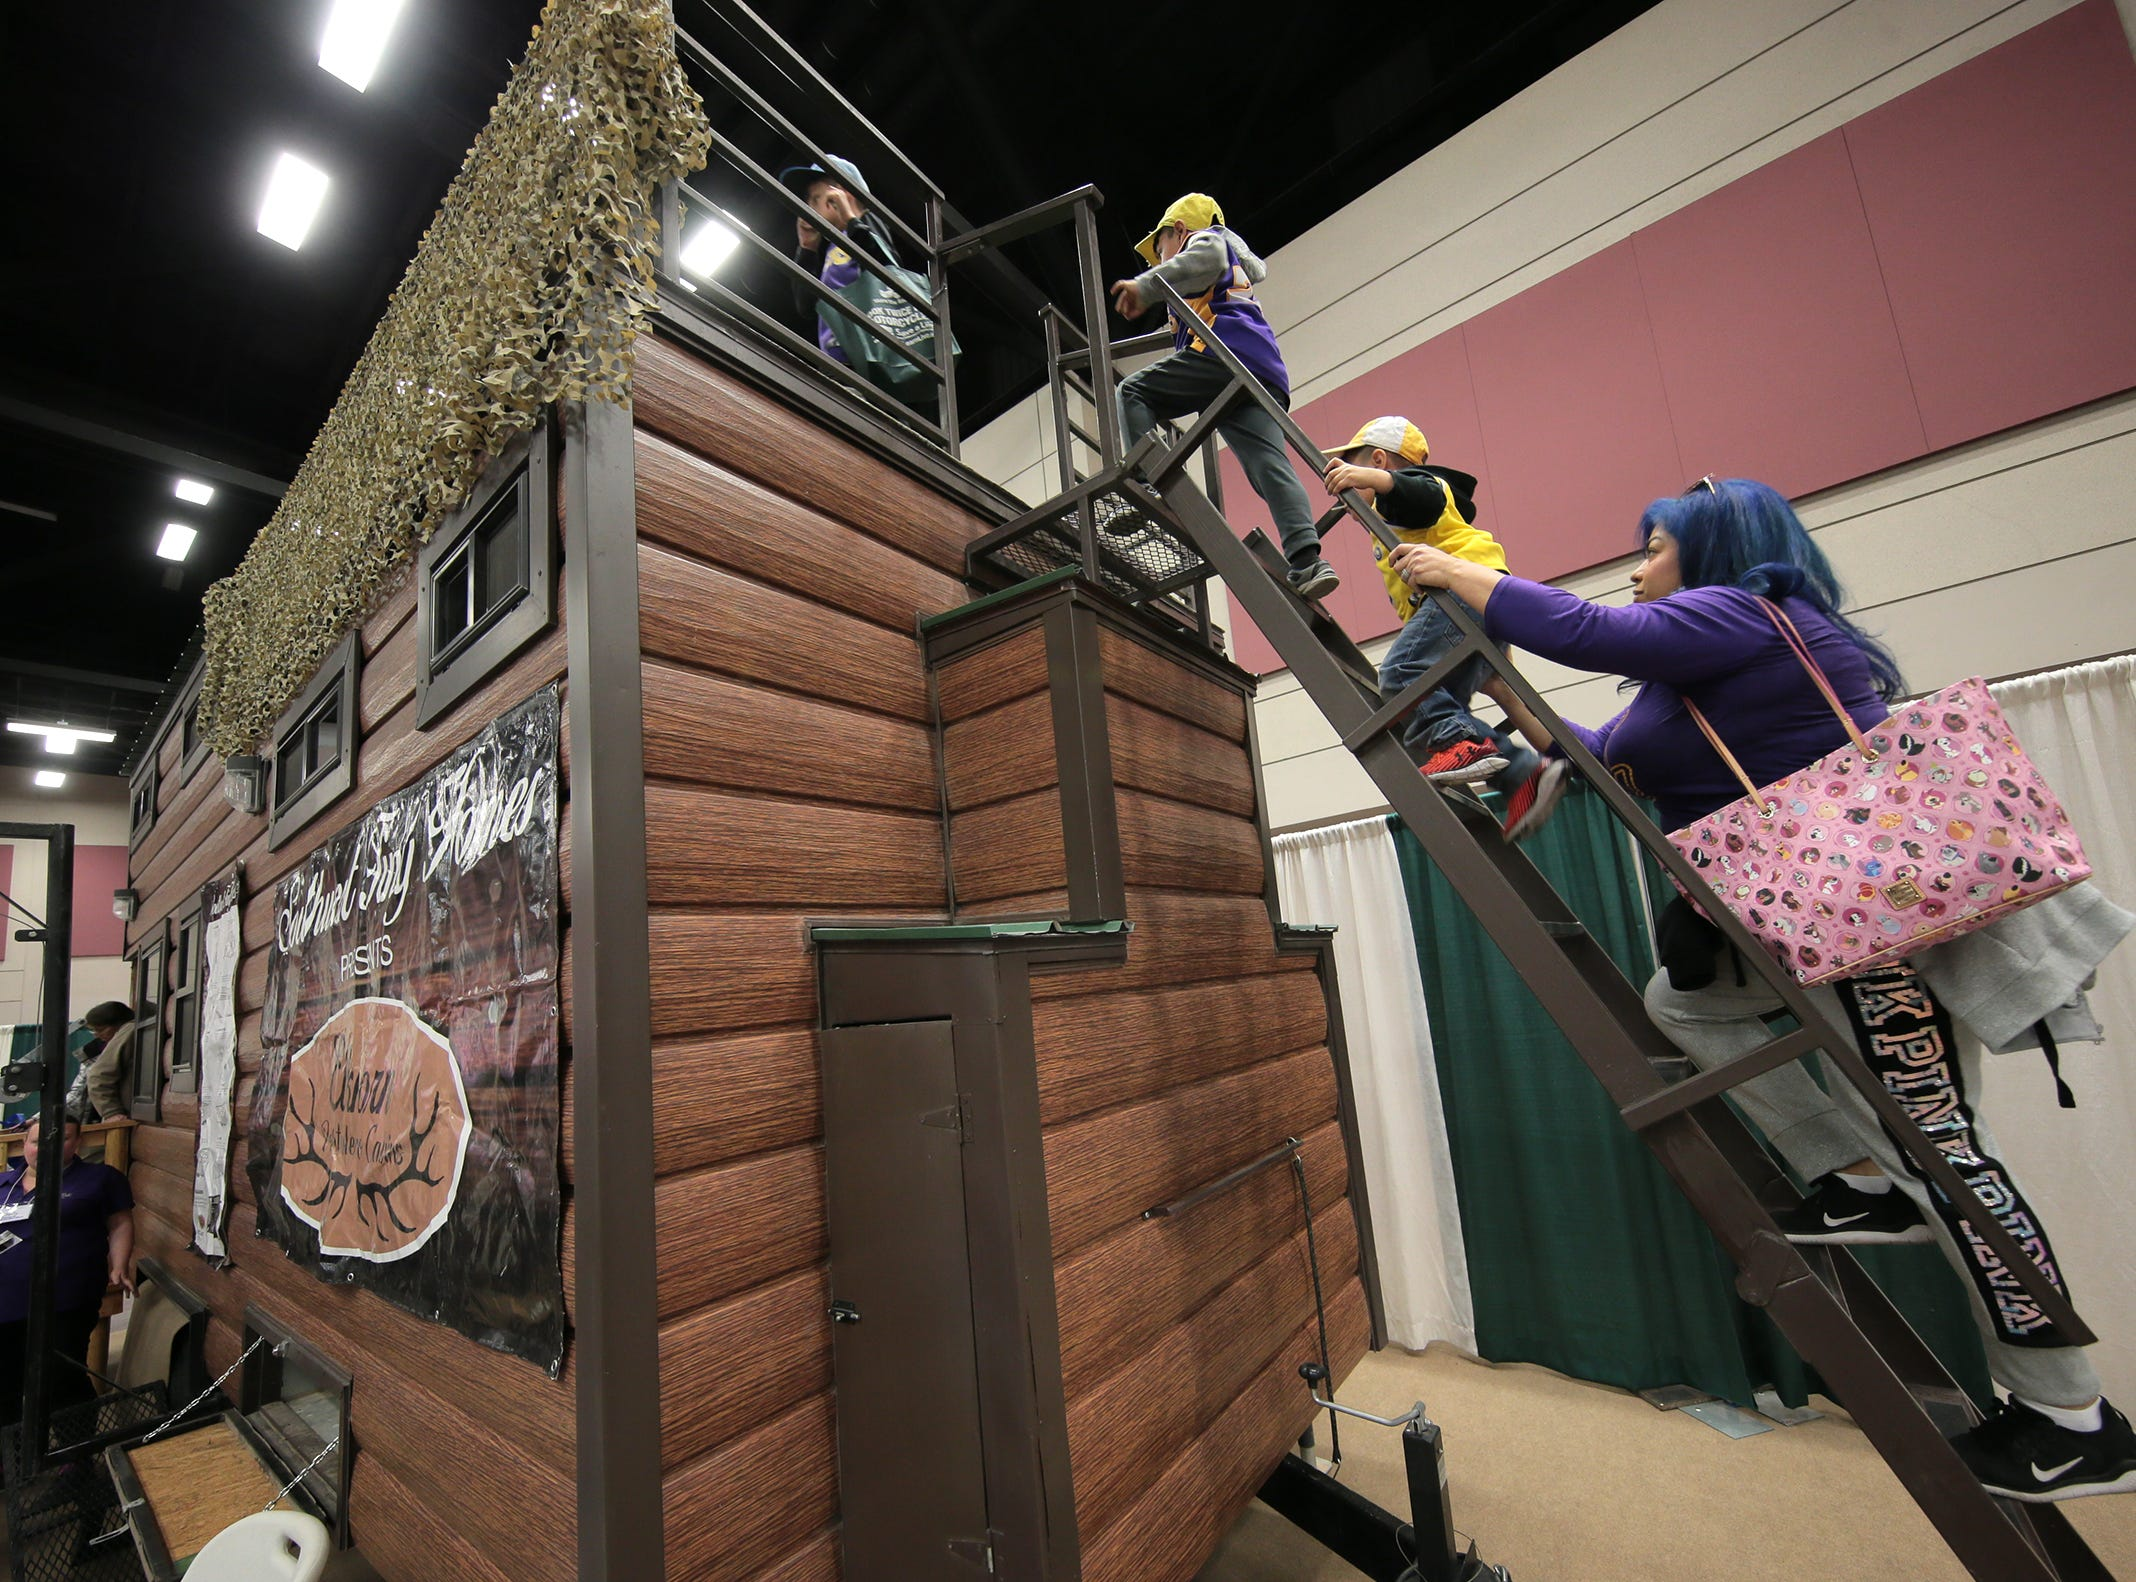 People at the 19th Annual El Paso Home and Garden Show check out a tiny home on Saturday, March 9, 2019. The annual event is in full swing at the convention center in Downtown. Find anything for your home from art to air conditioning. The show continues Sunday from 11 a.m. to 5 p.m.